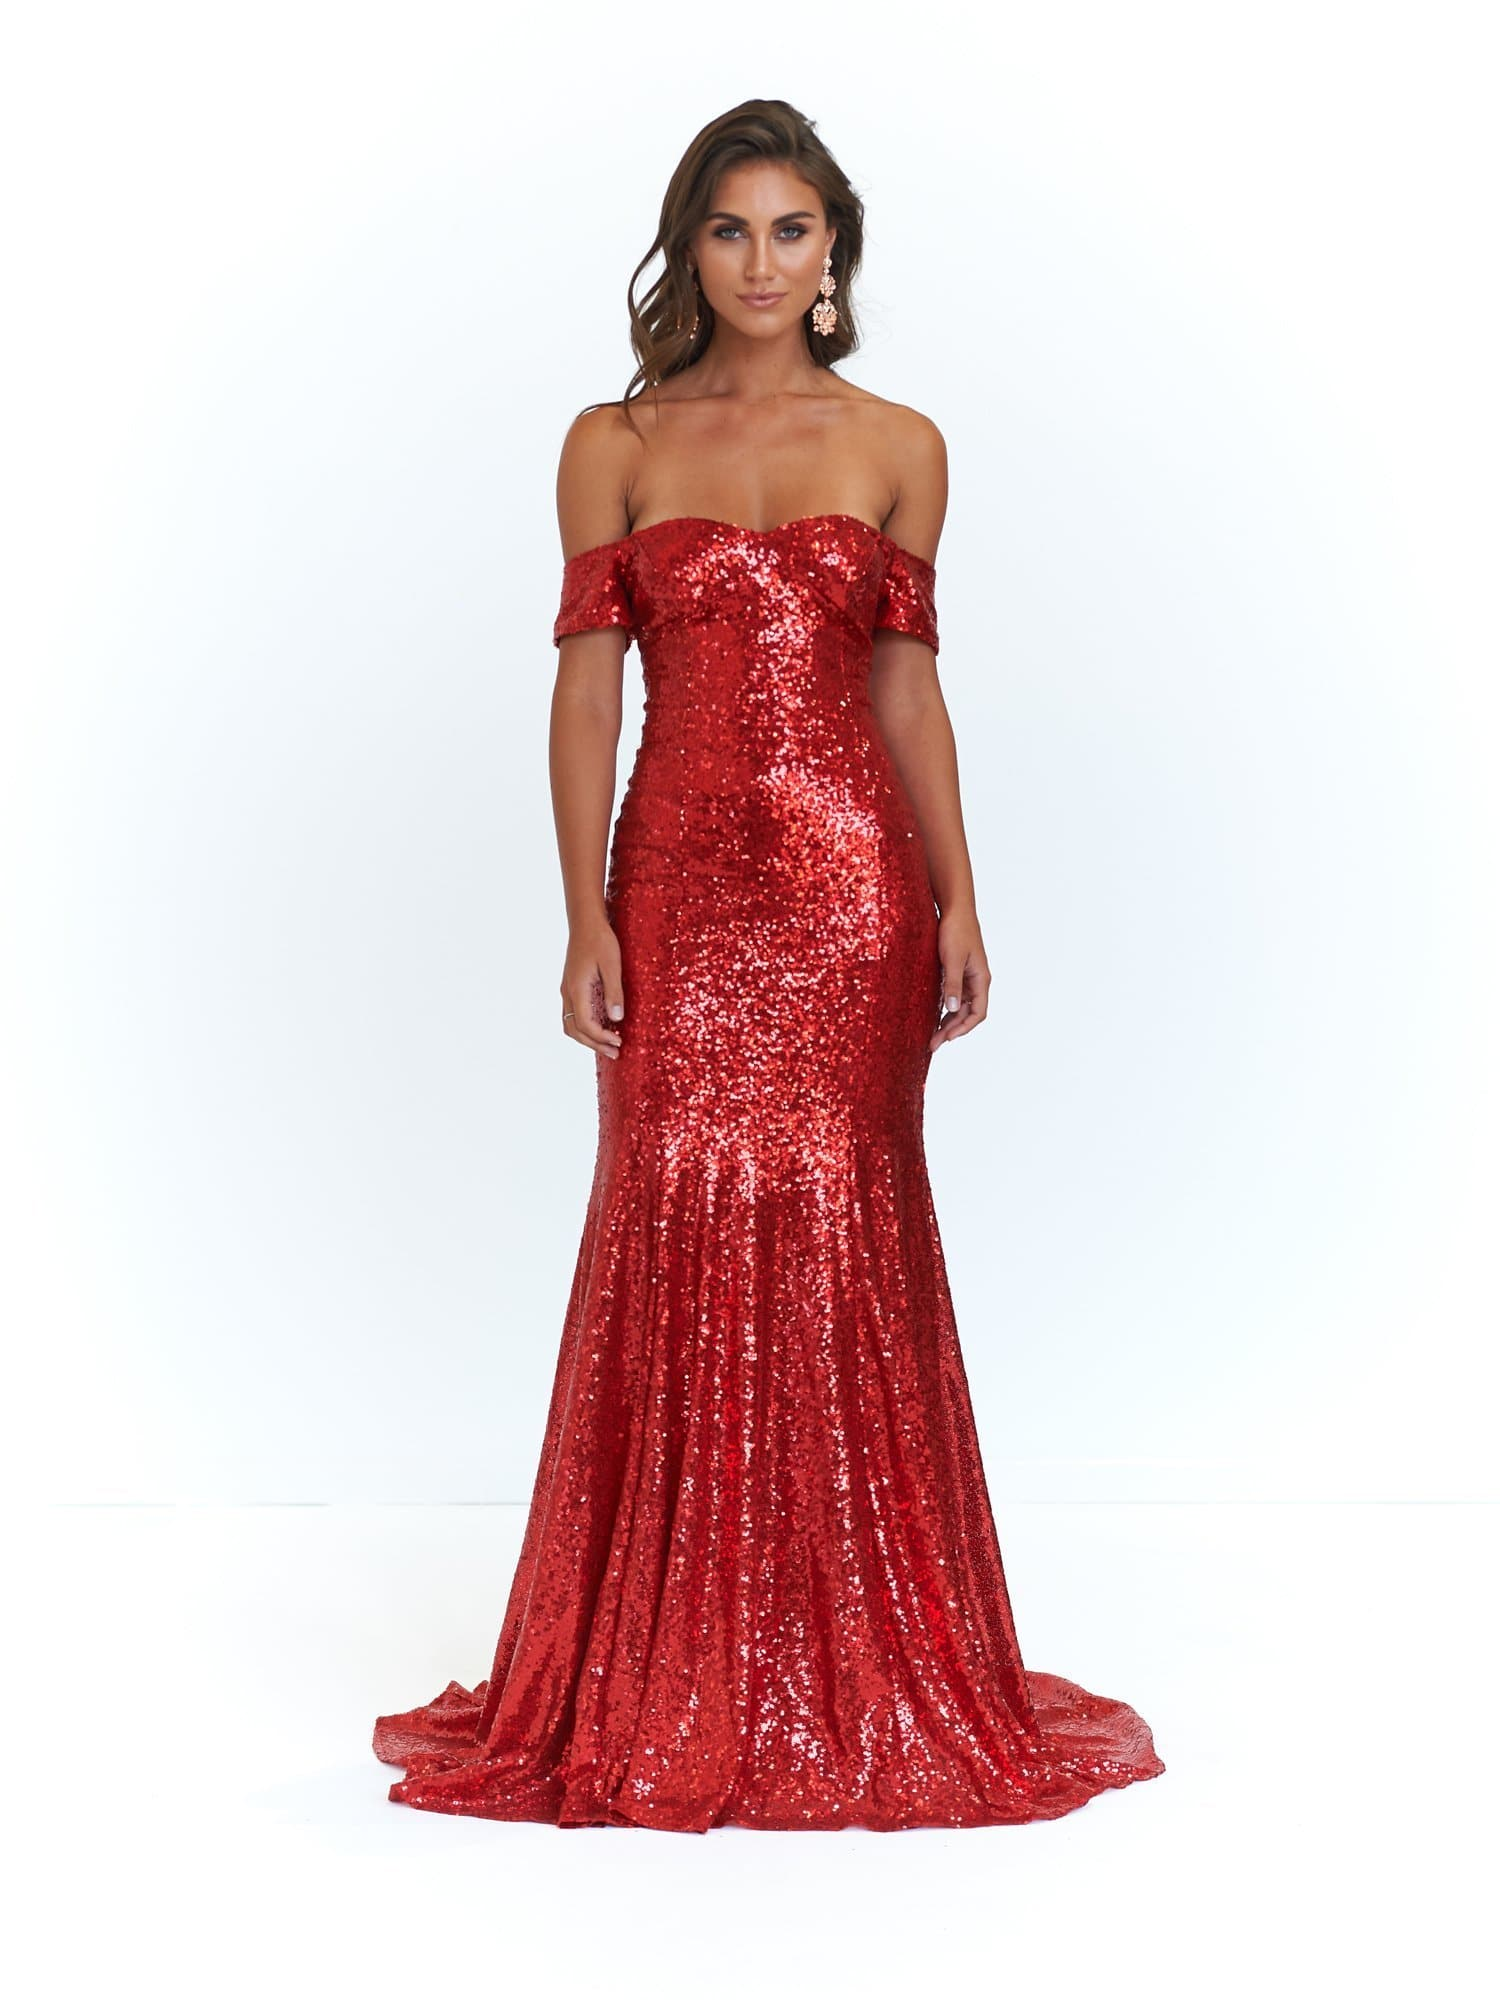 Kim Formal Dress - Red Sequins Off-Shoulder Full Length Mermaid Gown